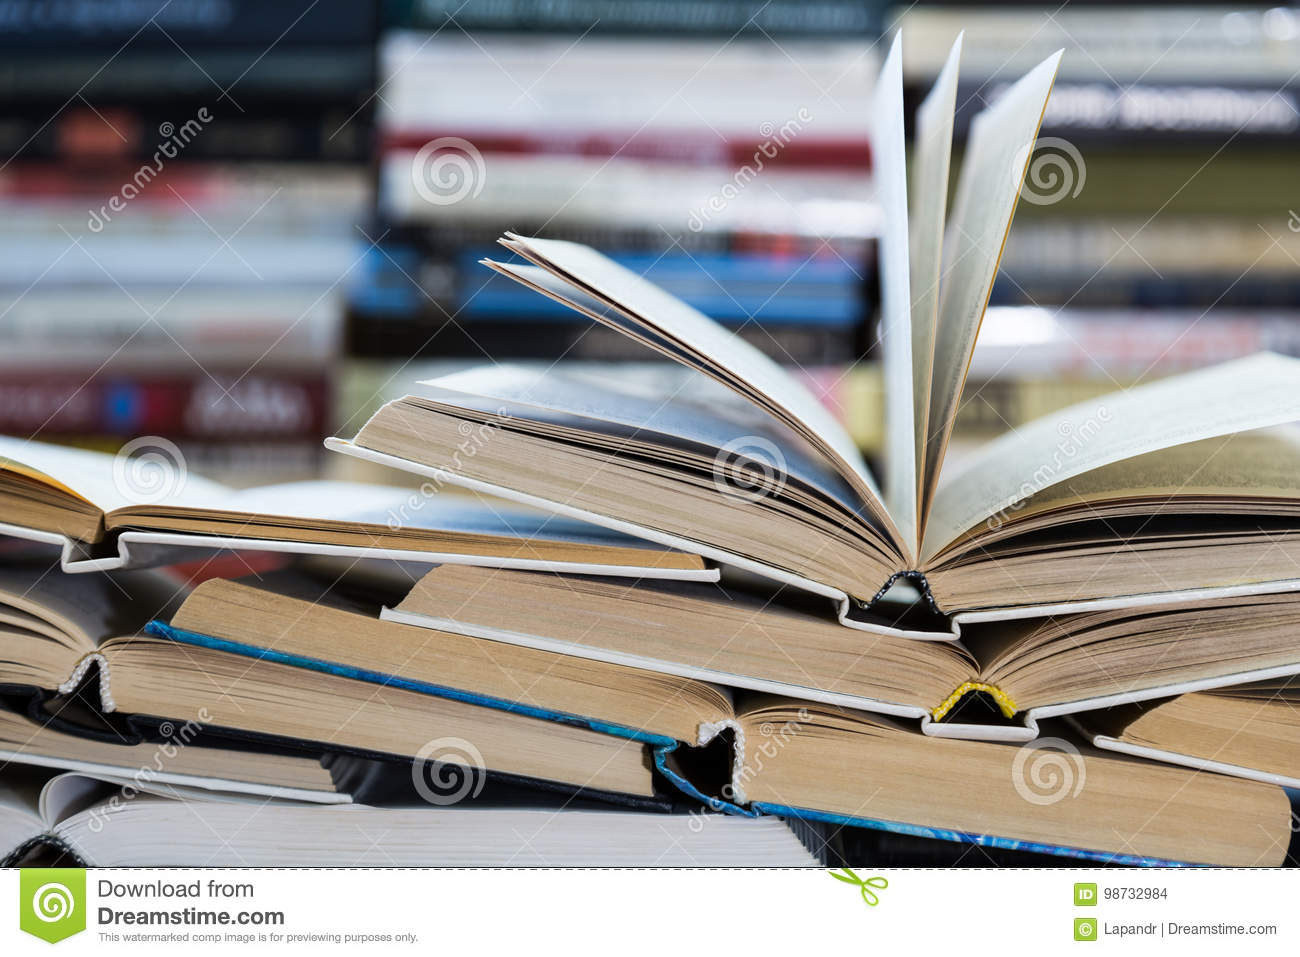 Download A Stack Of Books With Colorful Covers. The Library Or Bookstore. Books Or Textbooks. Education And Reading Stock Photo - Image of covers, information: 98732984